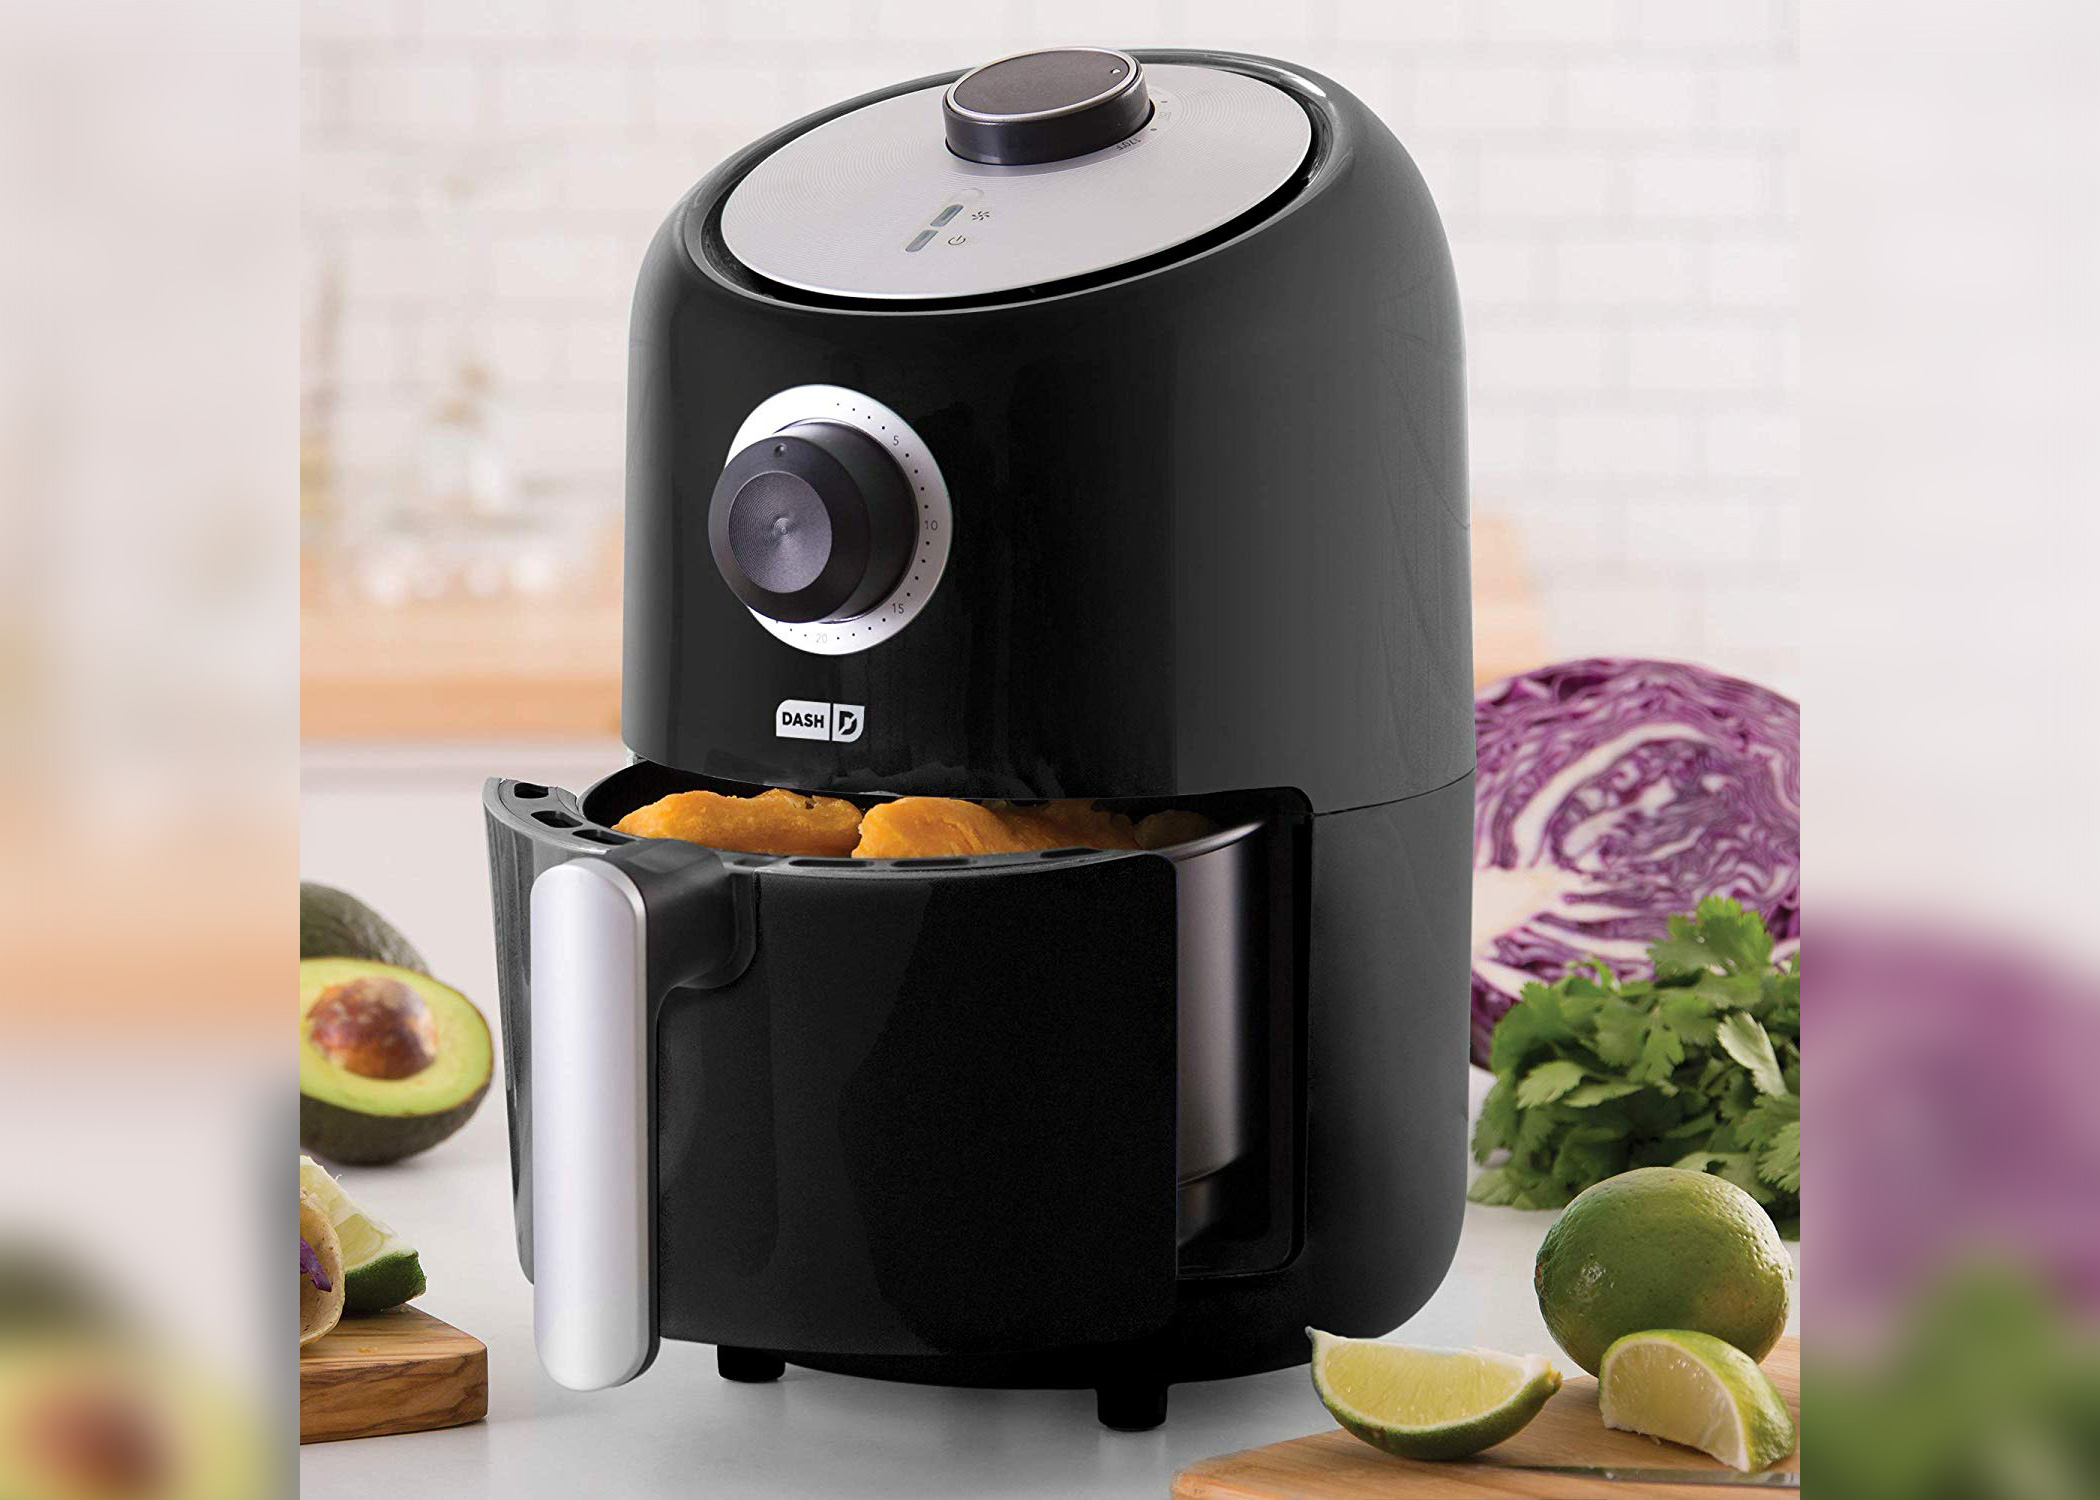 Dash's popular compact air fryer is down to $46 in this ...